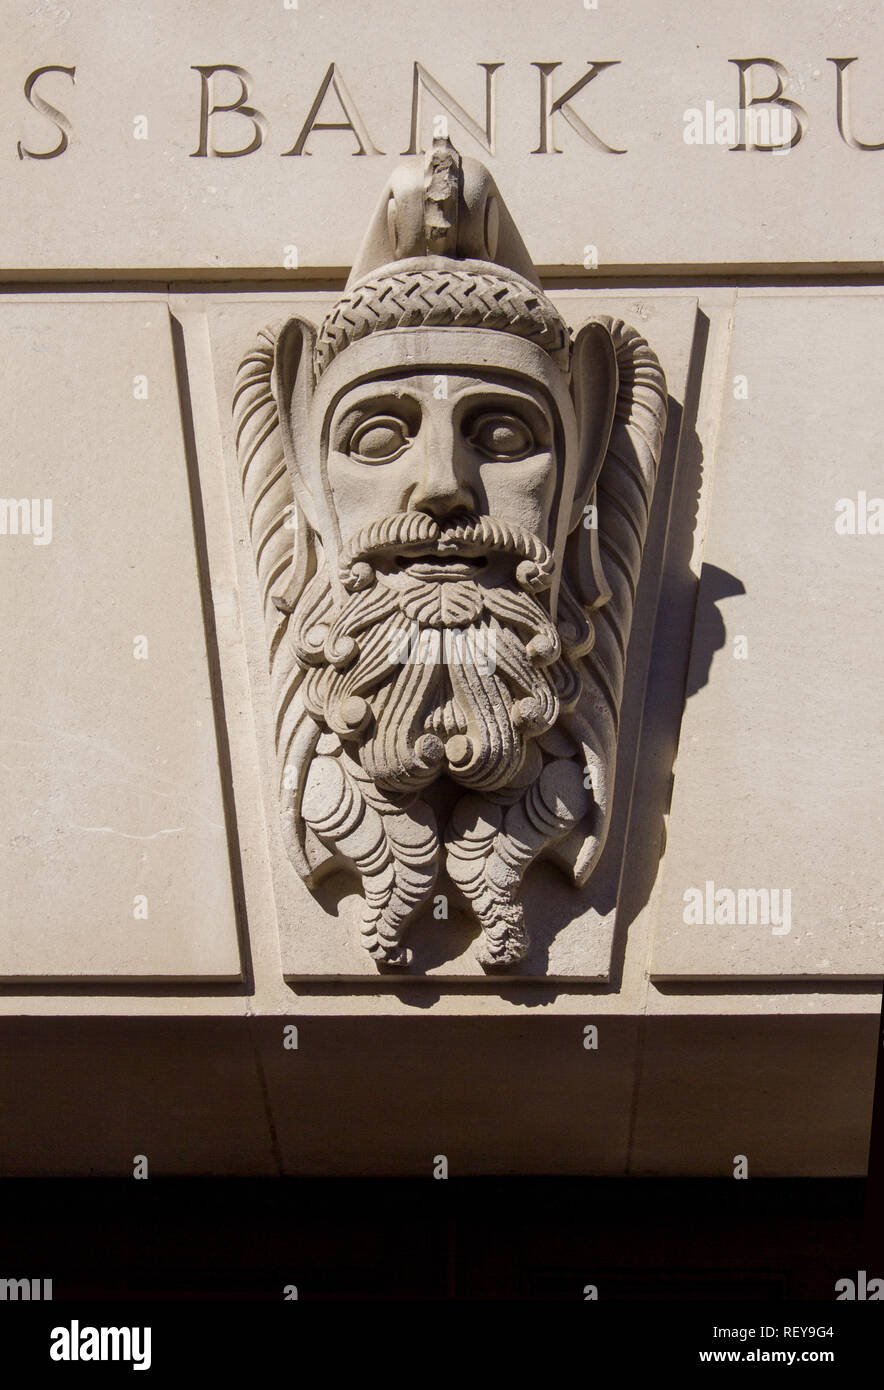 Carved head, Martin's Bank Building, Exchange Flags Liverpool - Stock Image